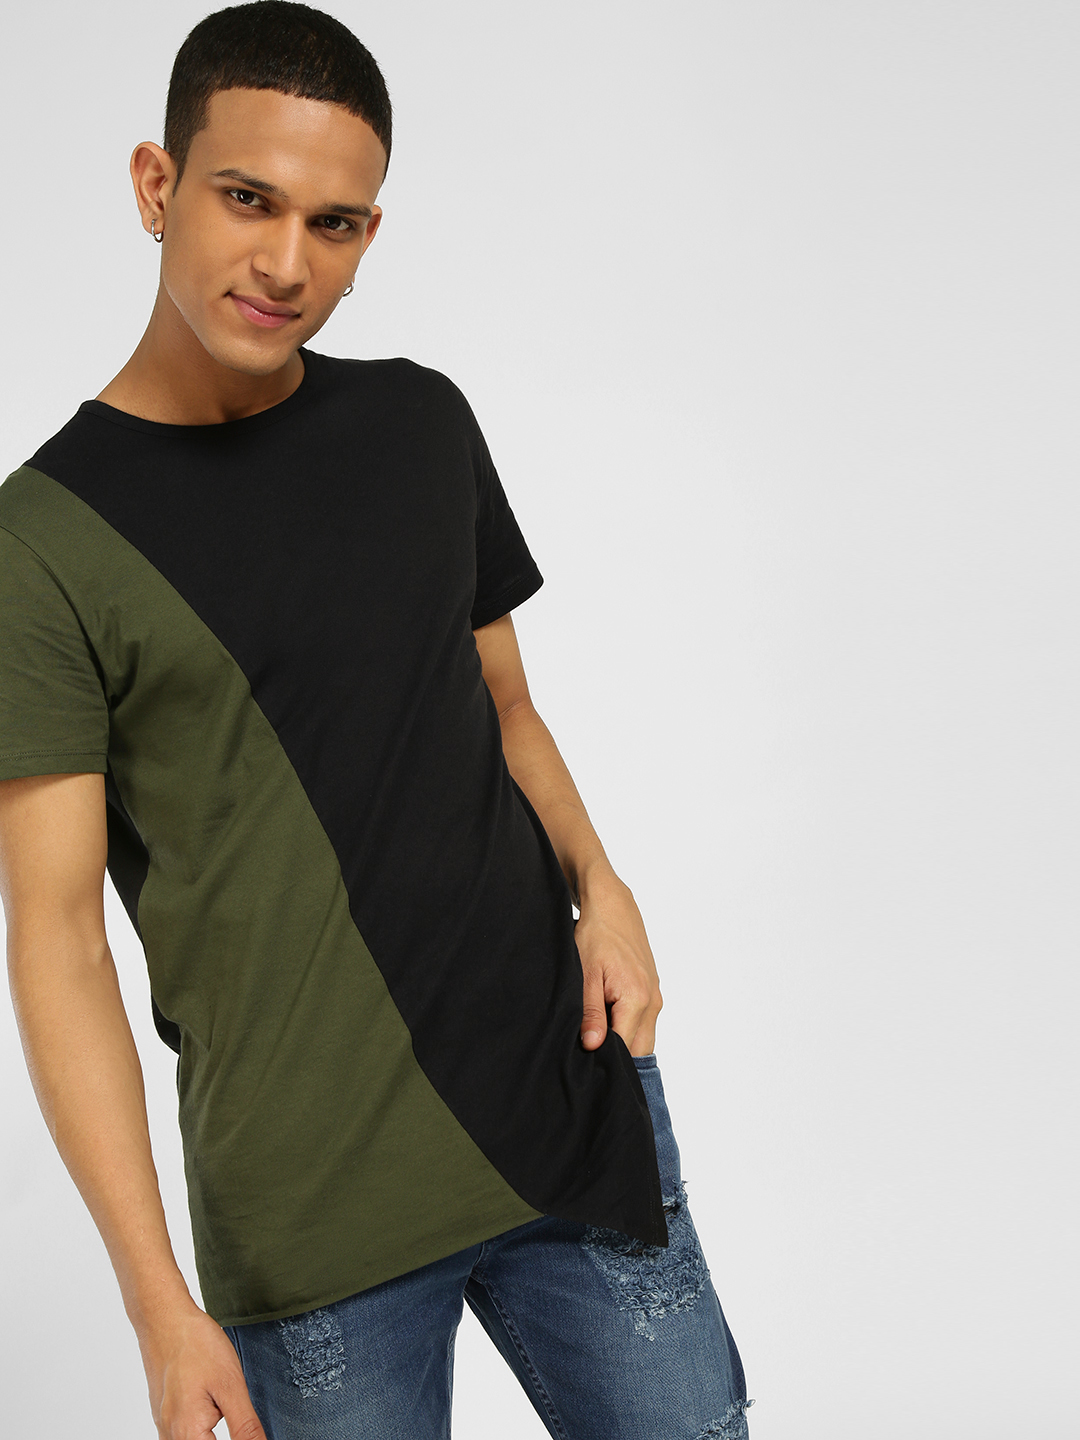 SKULT By Shahid Kapoor Multi Colour Block Asymmetric Hem T-Shirt 1